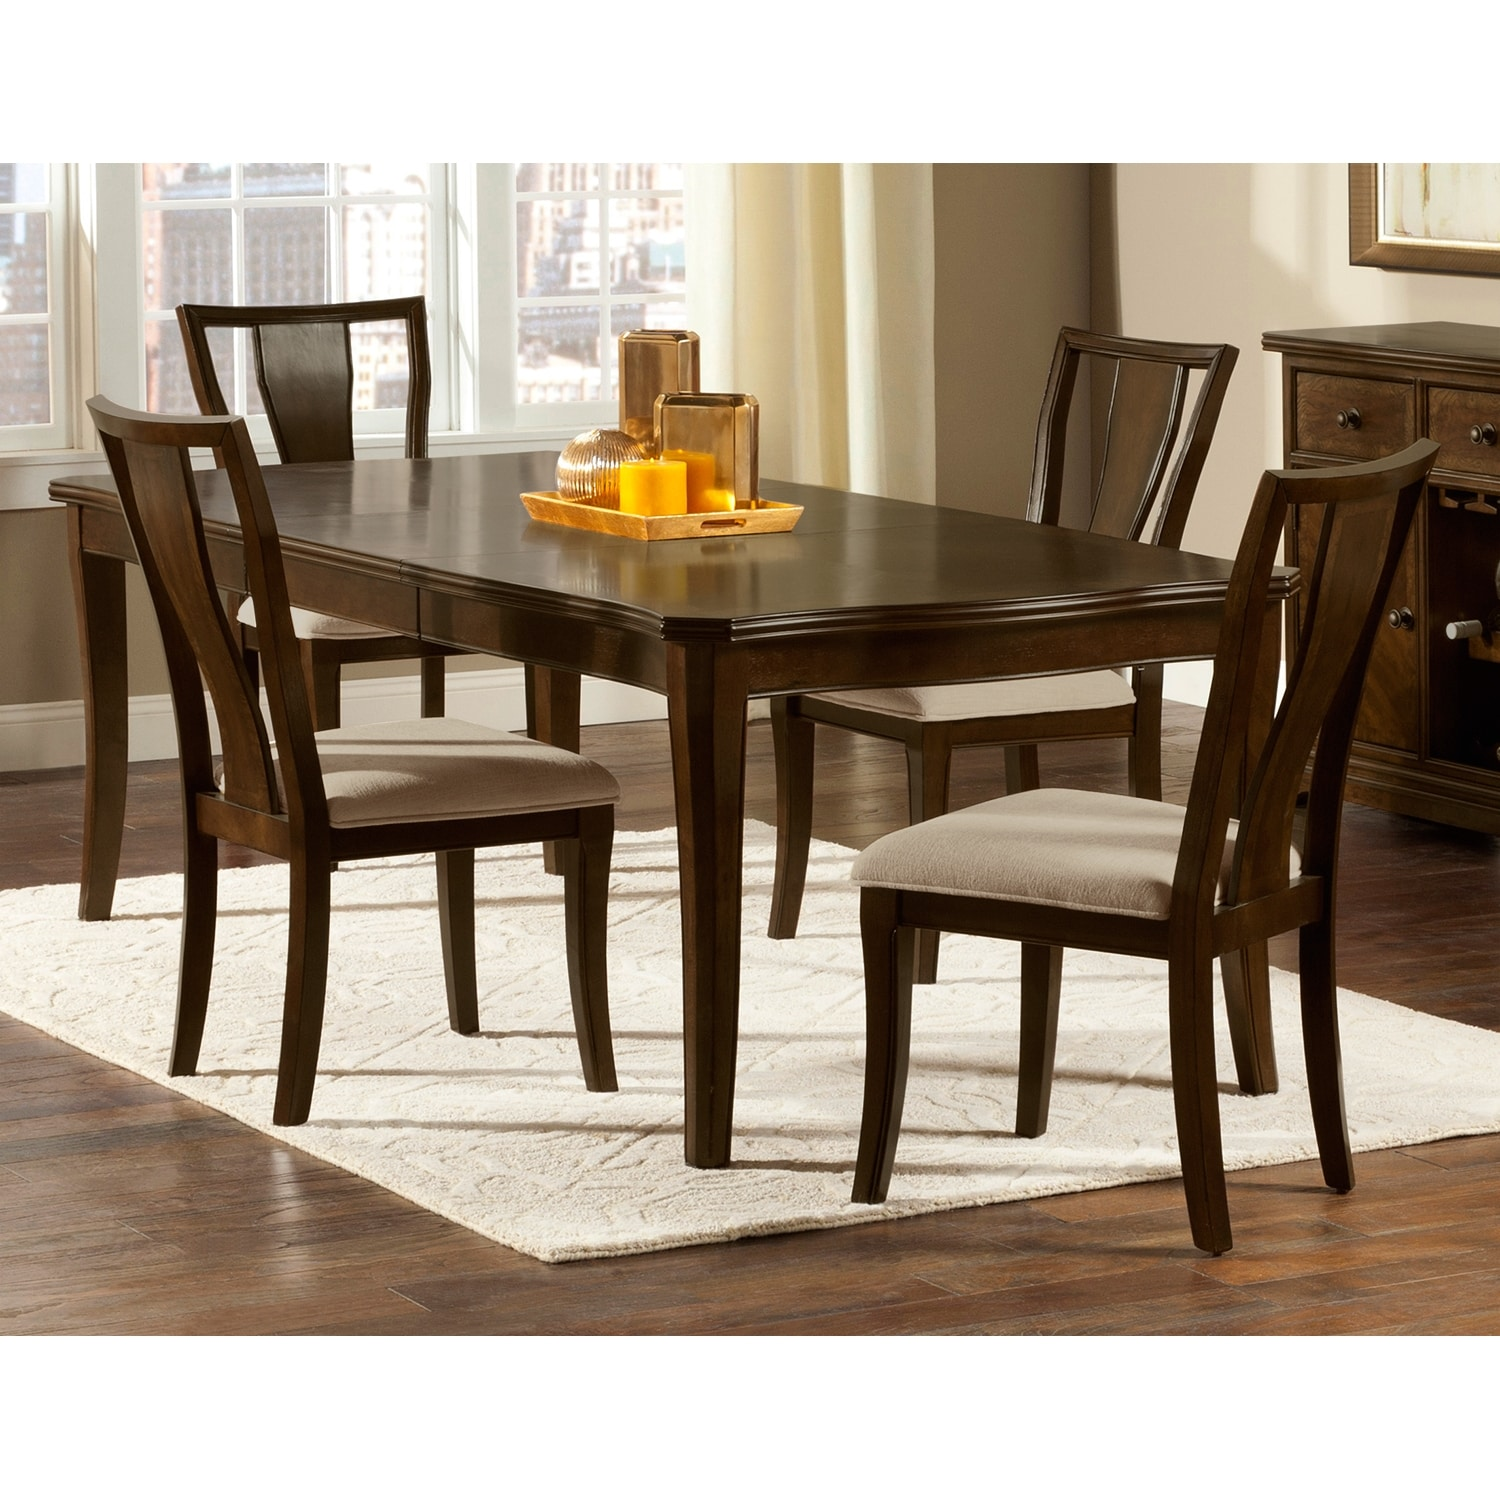 Value City Dining Room Furniture: Westin Dining Room 5 Pc. Dinette